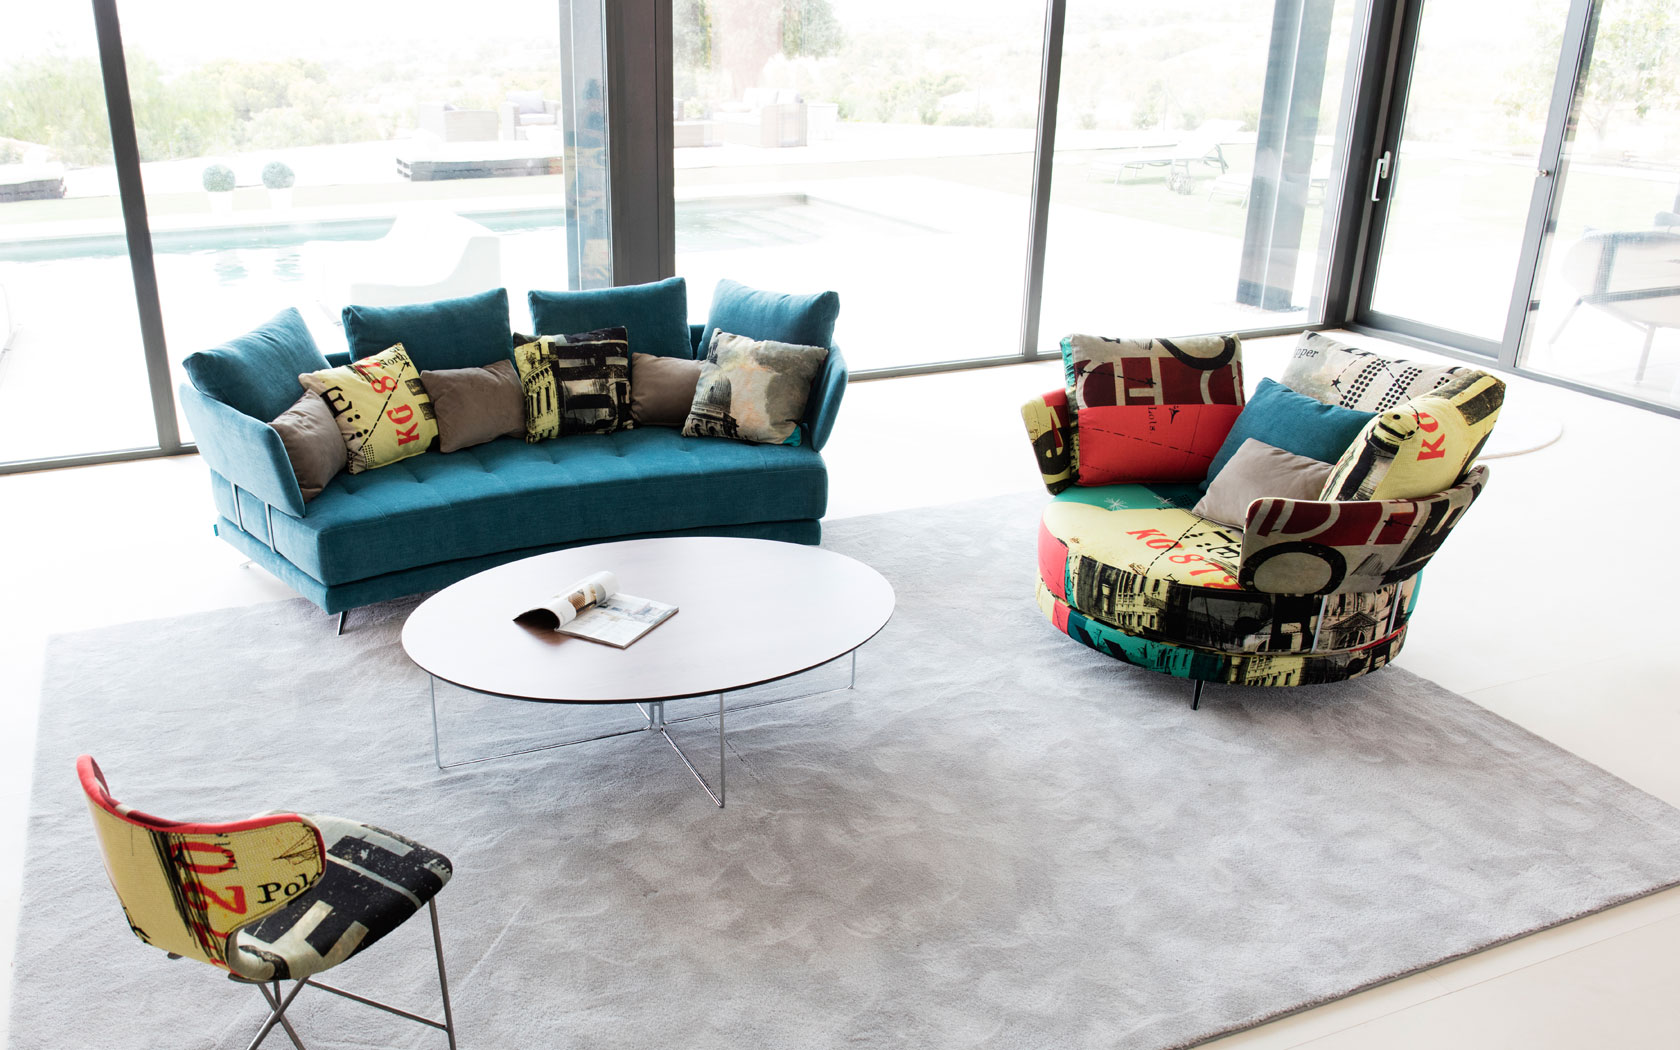 Pacific sofa Fama 2019 06